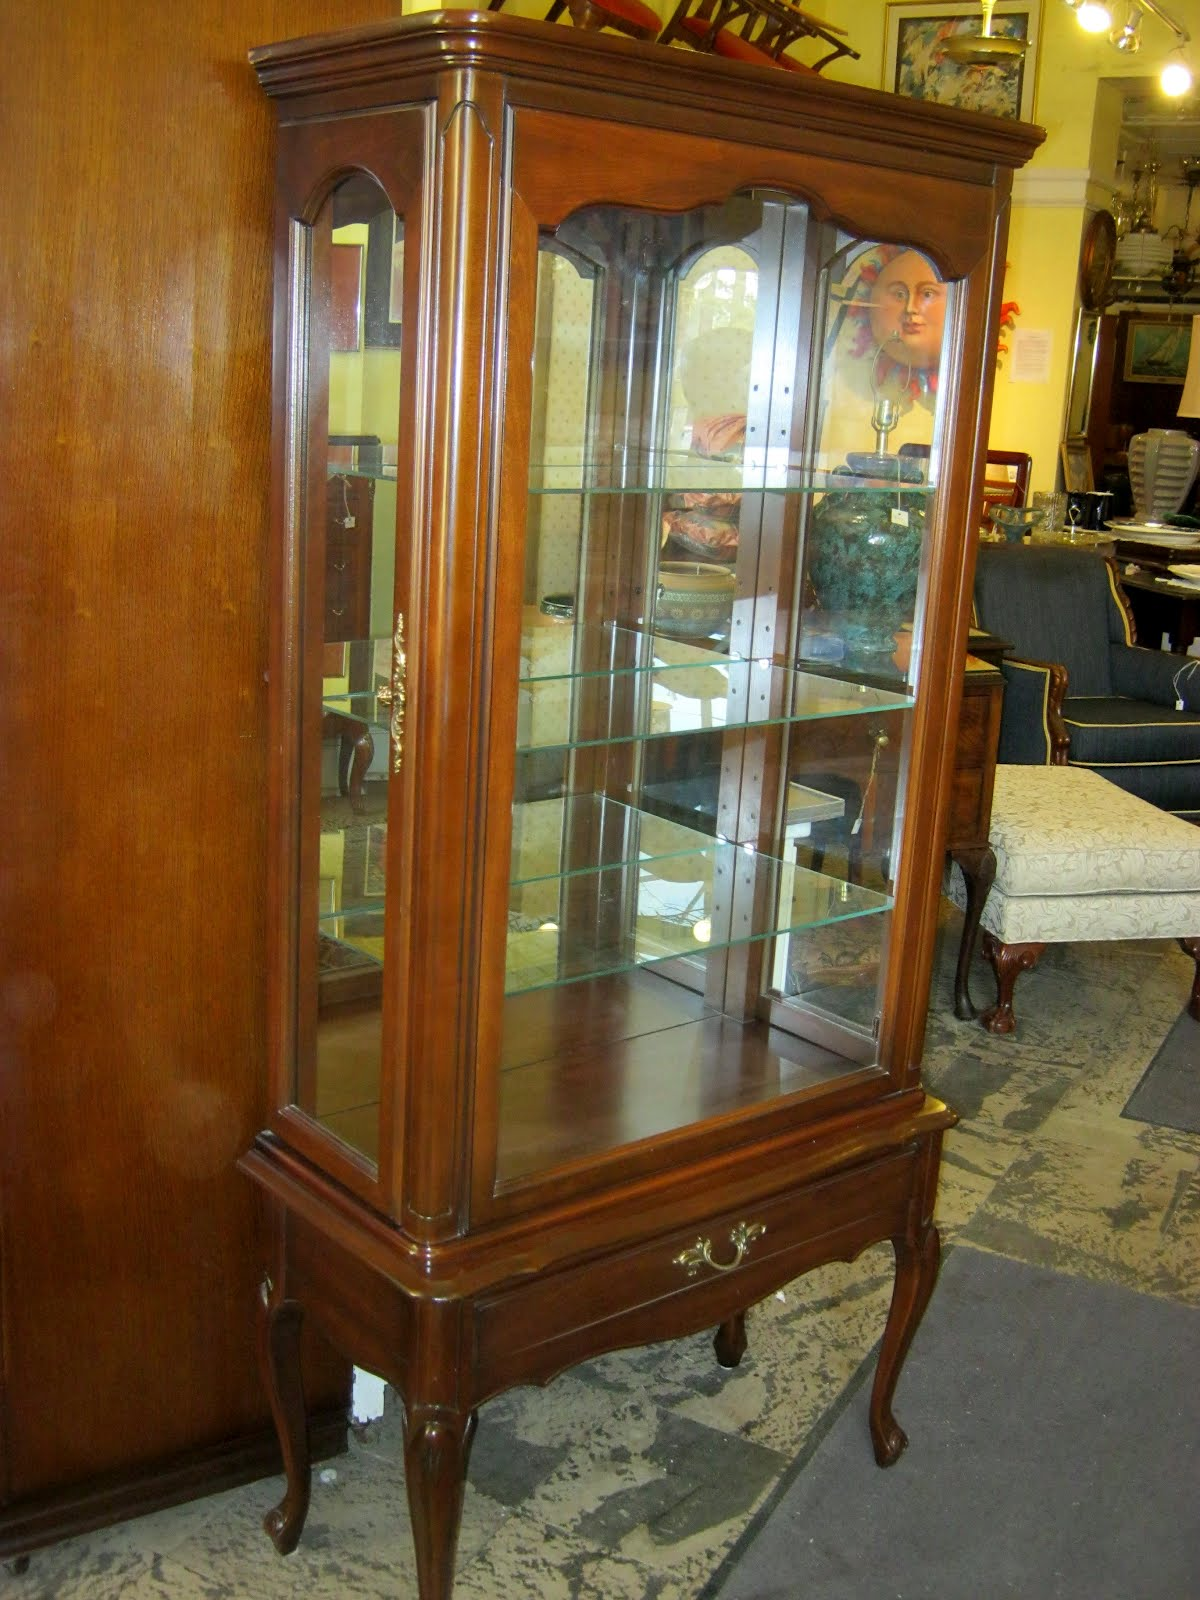 Funk & Gruven A-Z: FRENCH PROVINCIAL CURIO CABINET